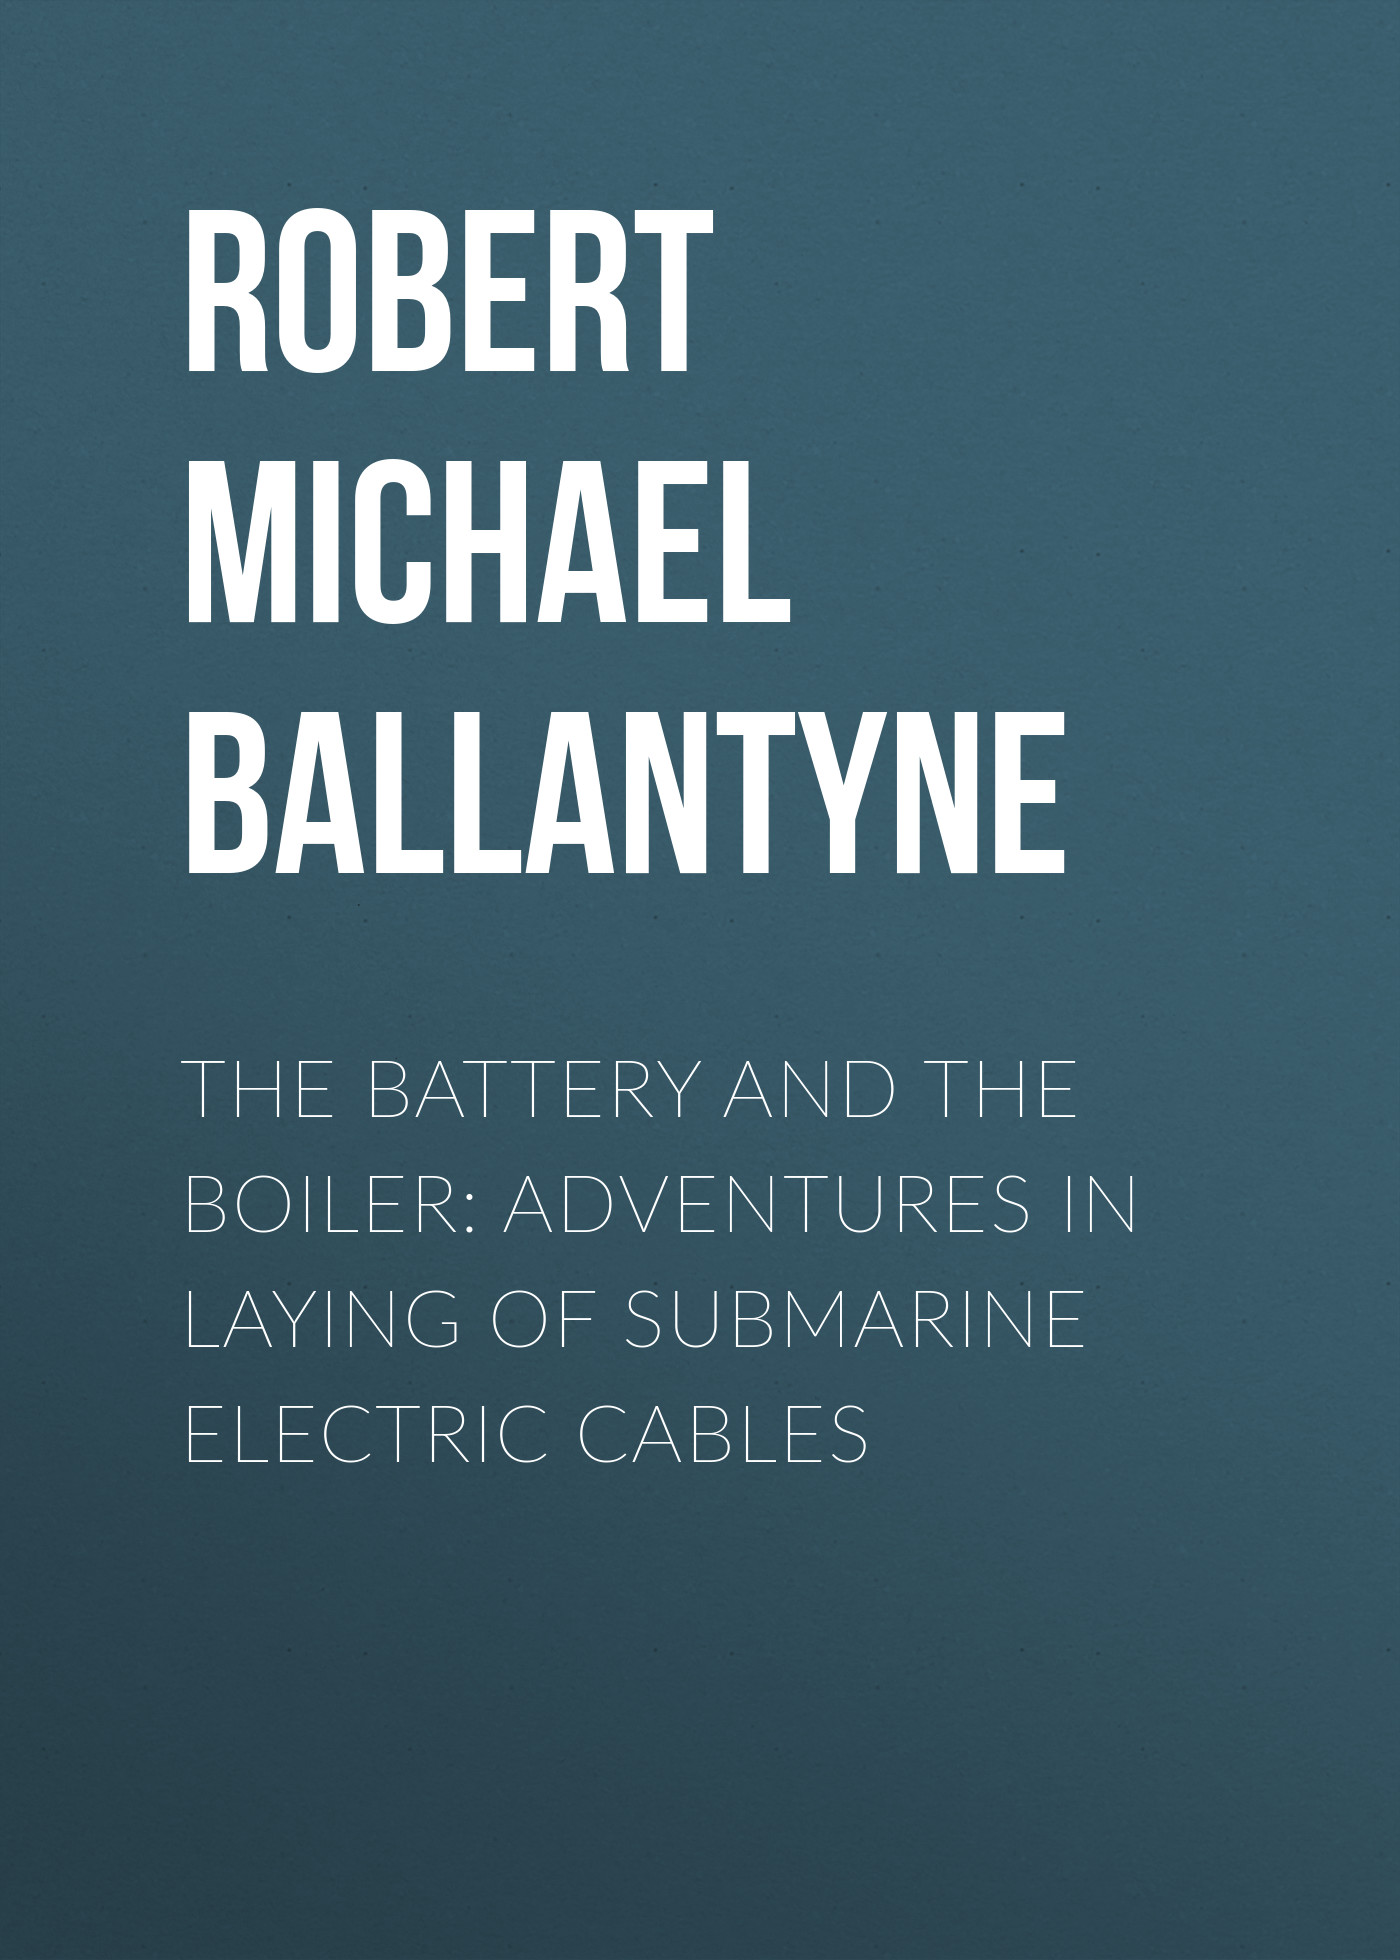 Robert Michael Ballantyne The Battery and the Boiler: Adventures in Laying of Submarine Electric Cables